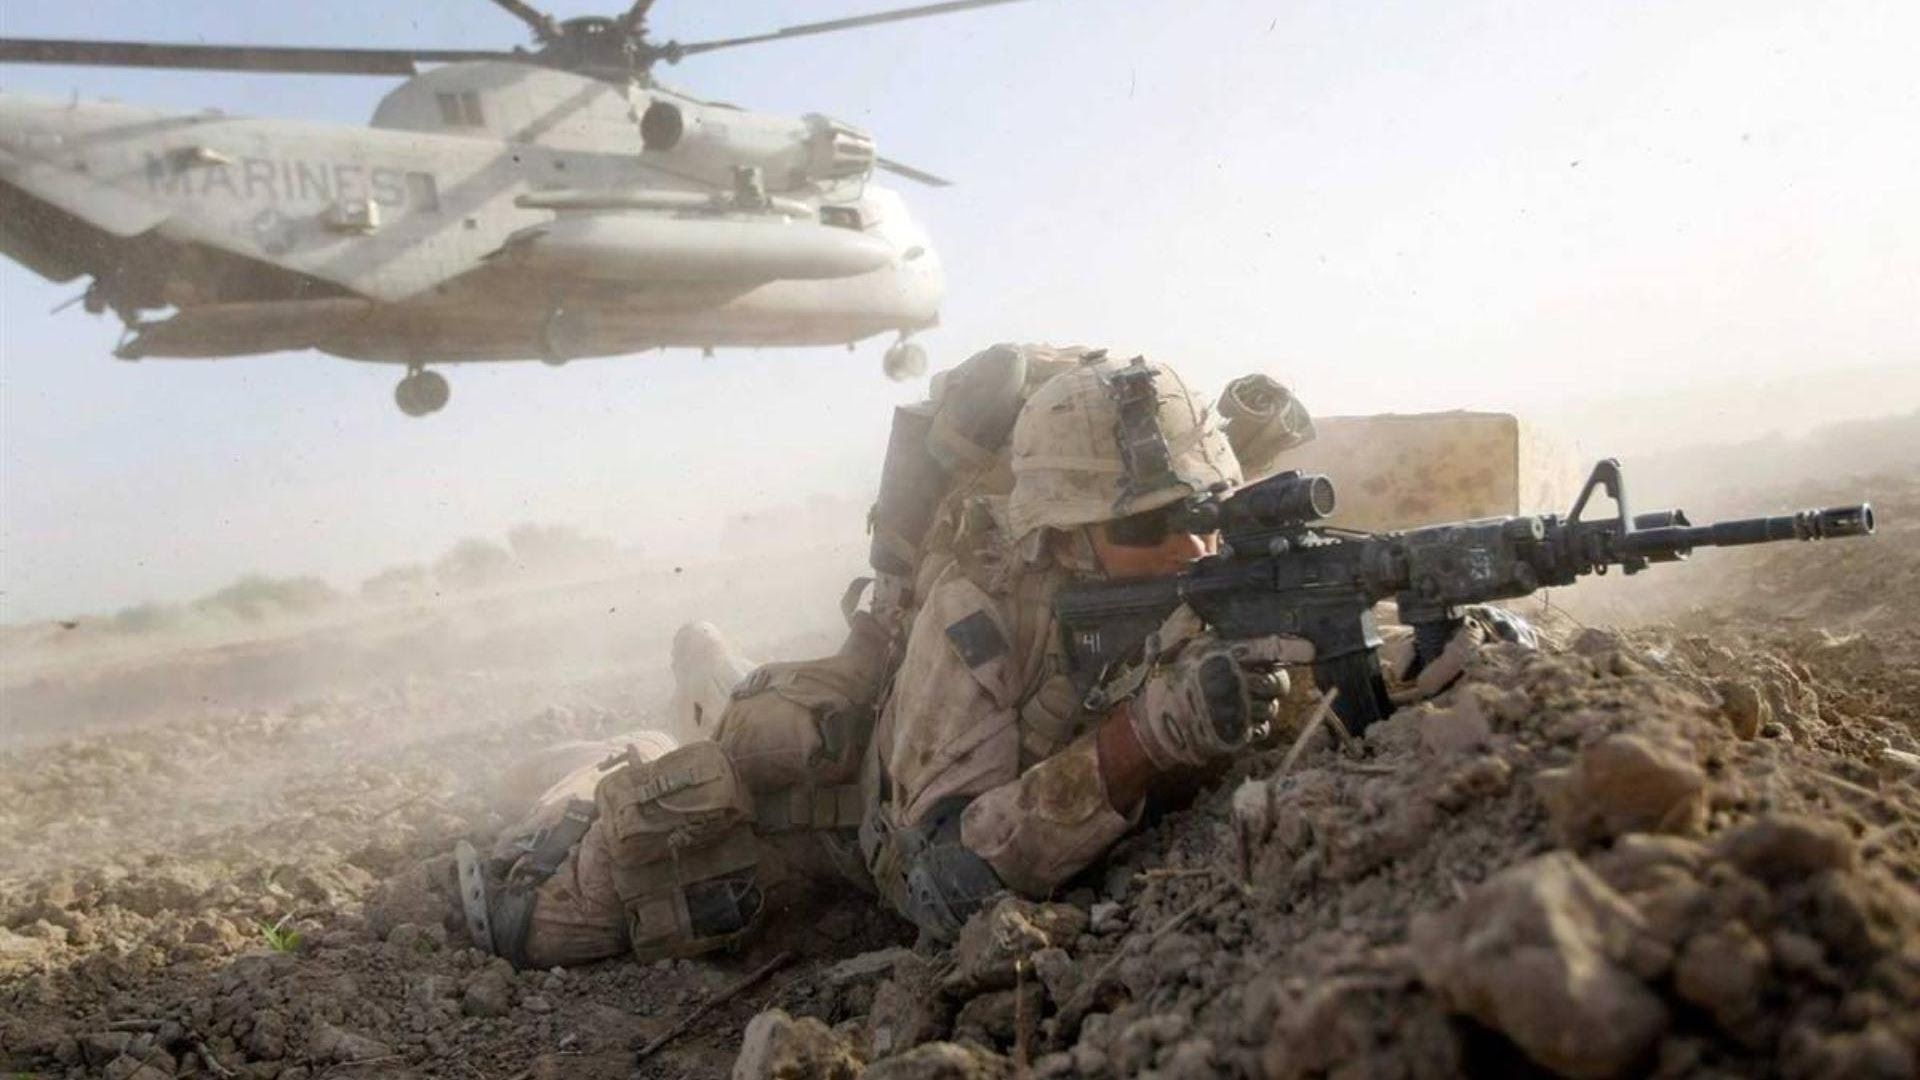 US Marines in Afghanistan  Combat Footage 1080p - Intense Firefights